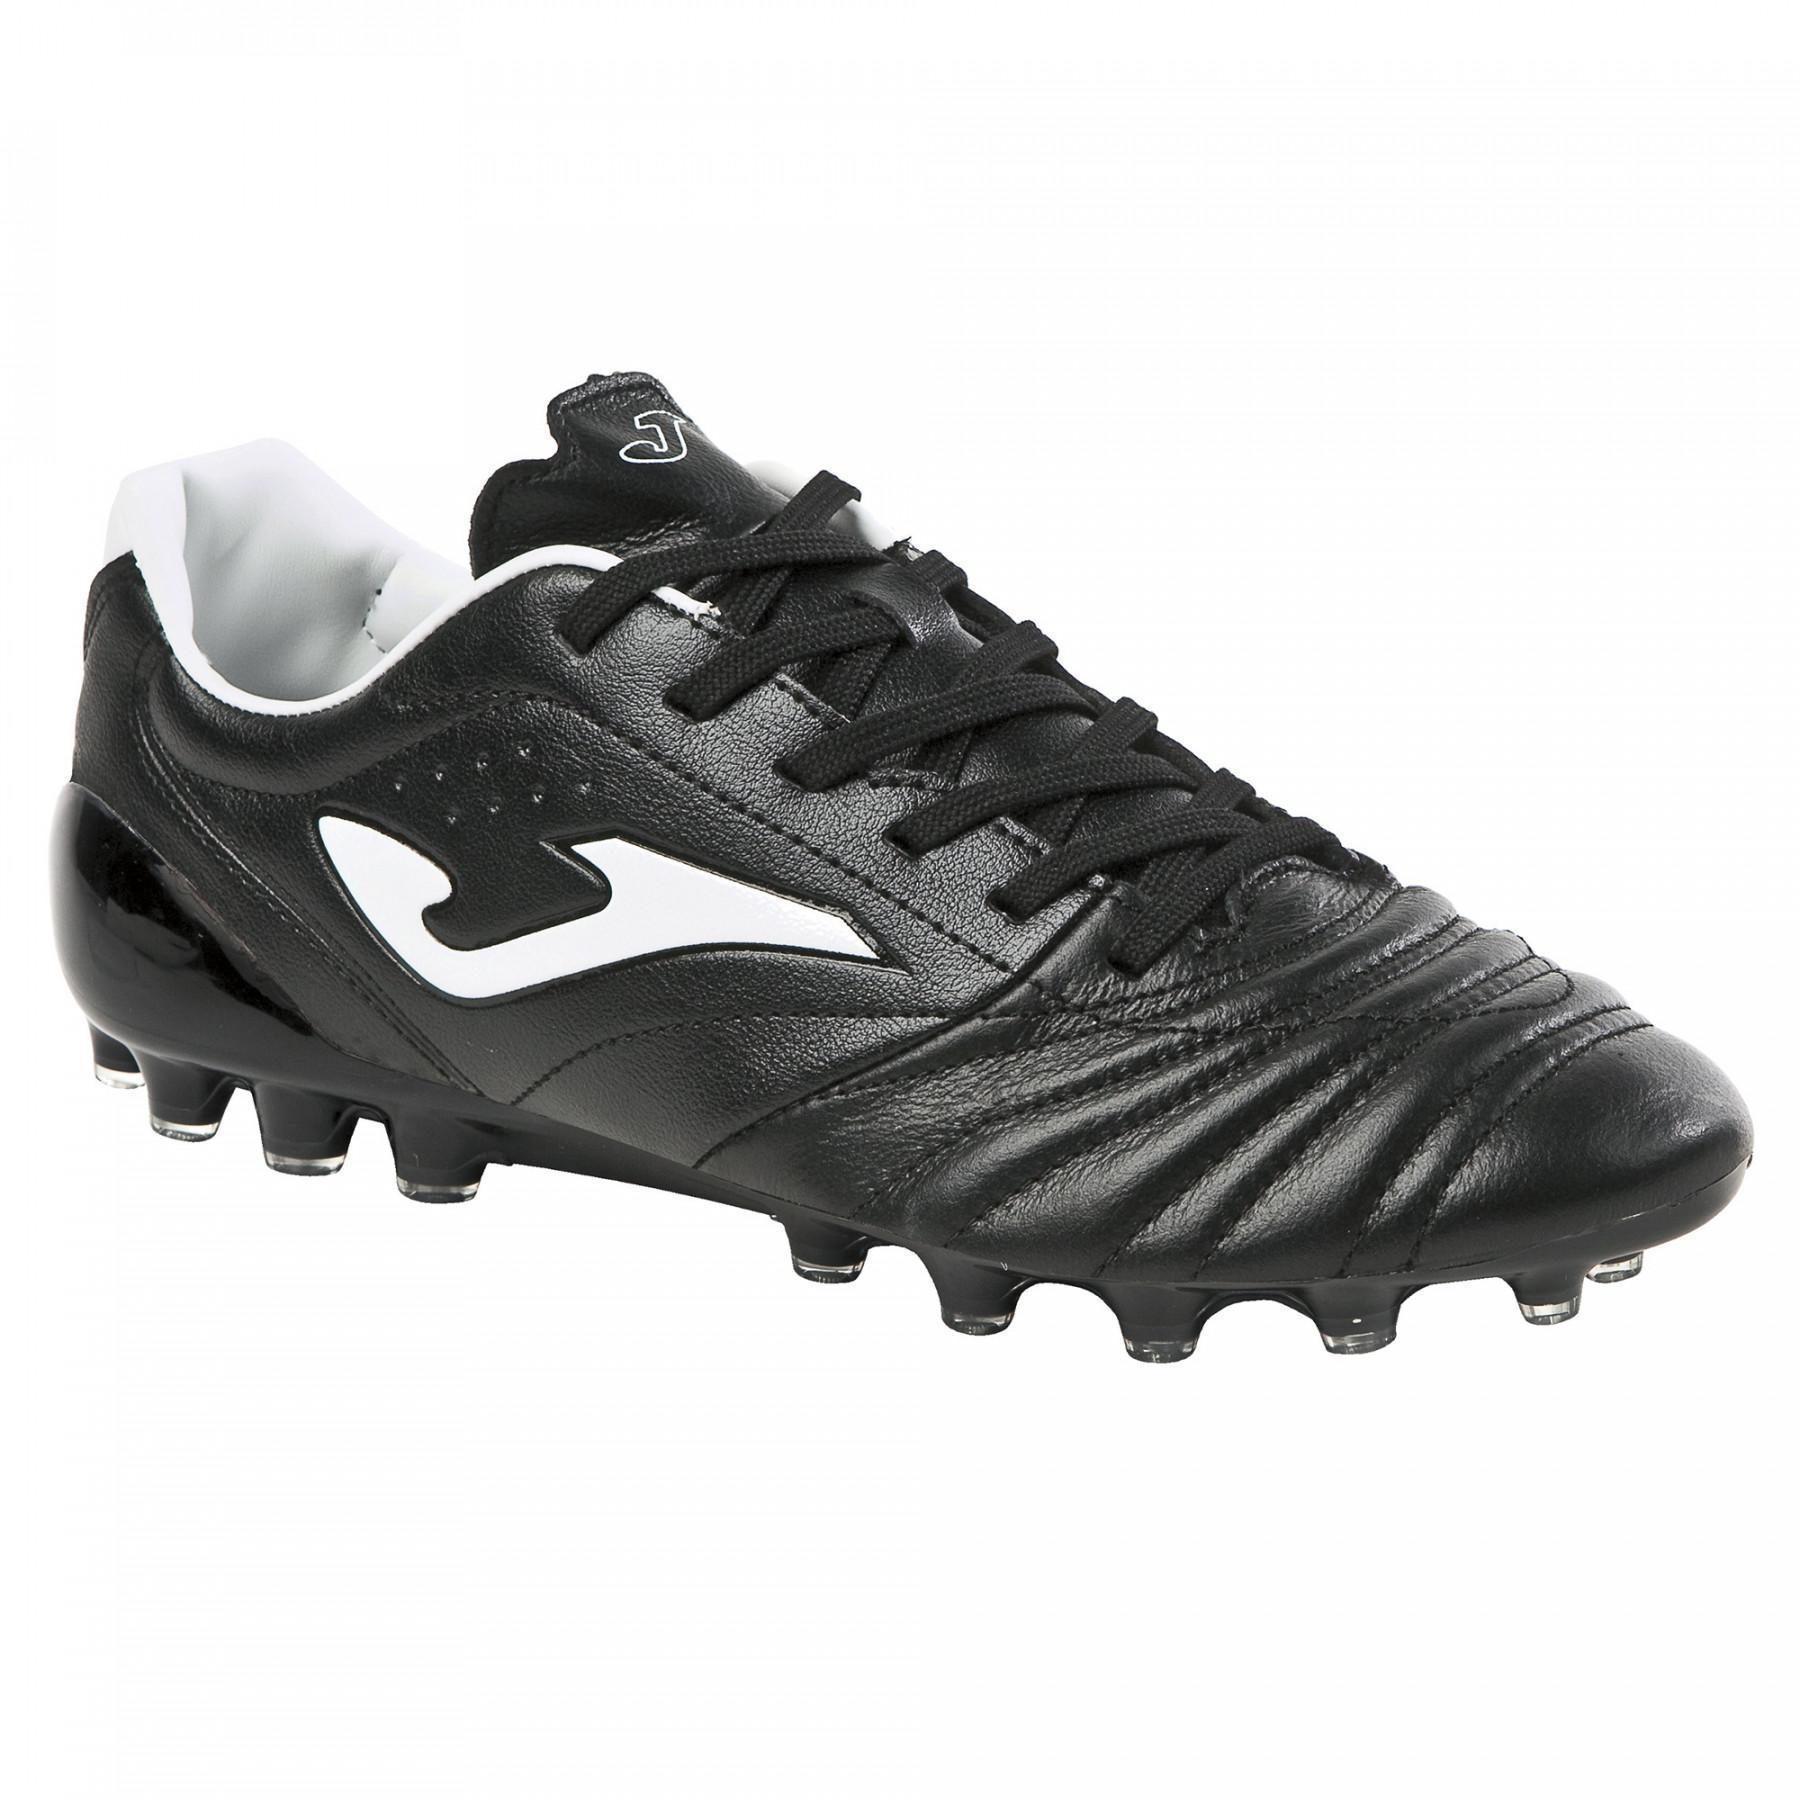 Chaussures Joma Aguila pro 801 AG